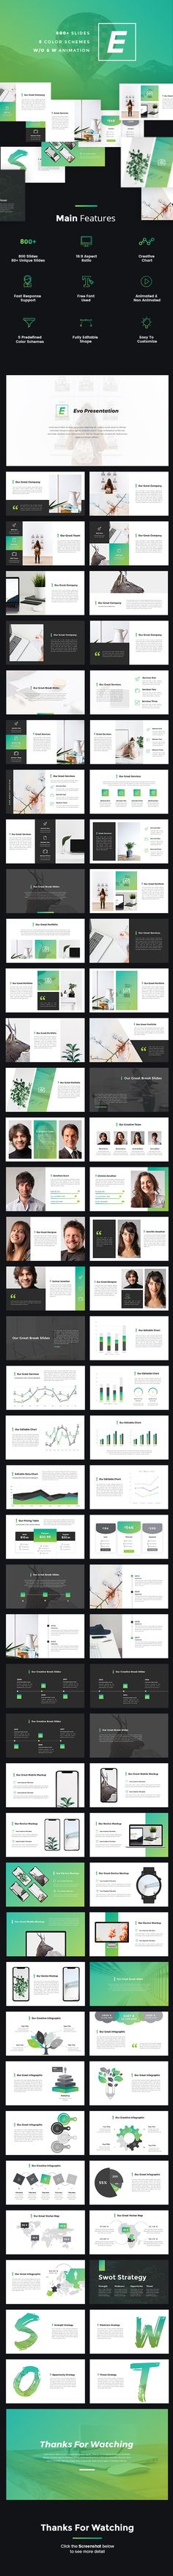 Evo - Creative Google Slides Template - Google Slides Presentation Templates  Download link: https://graphicriver.net/item/evo-creative-google-slides-template/22078070?ref=KlitVogli